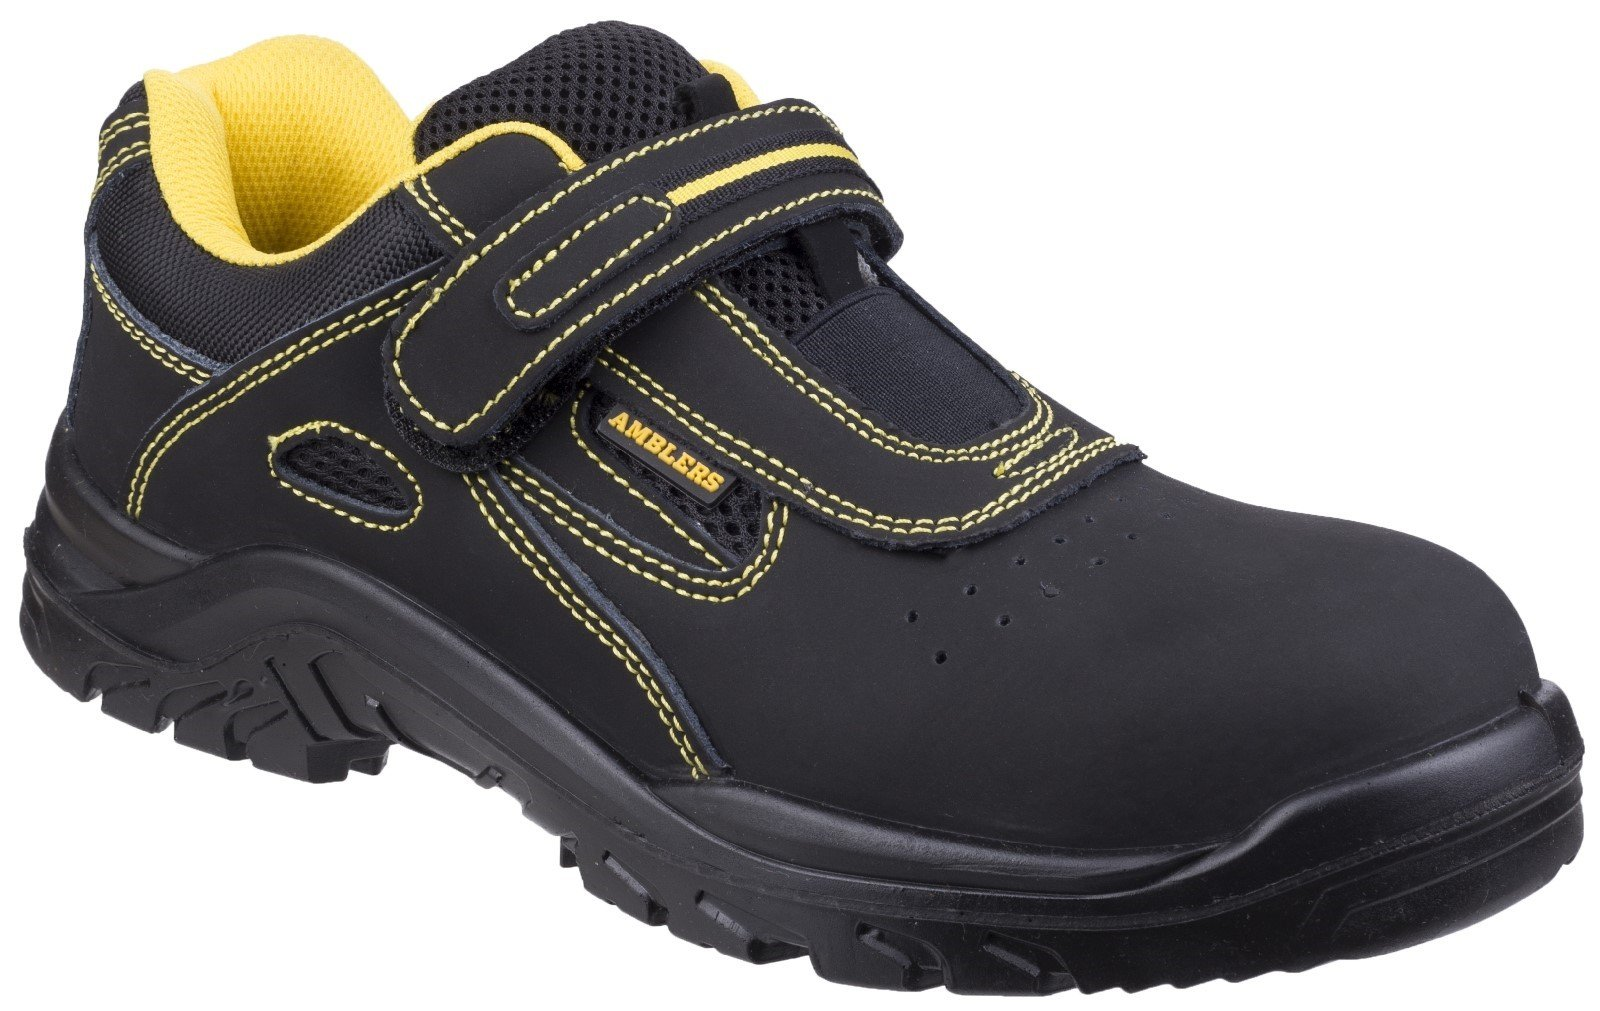 Amblers Unisex Safety Breathable Touch Fastening Trainer Black - Black 6